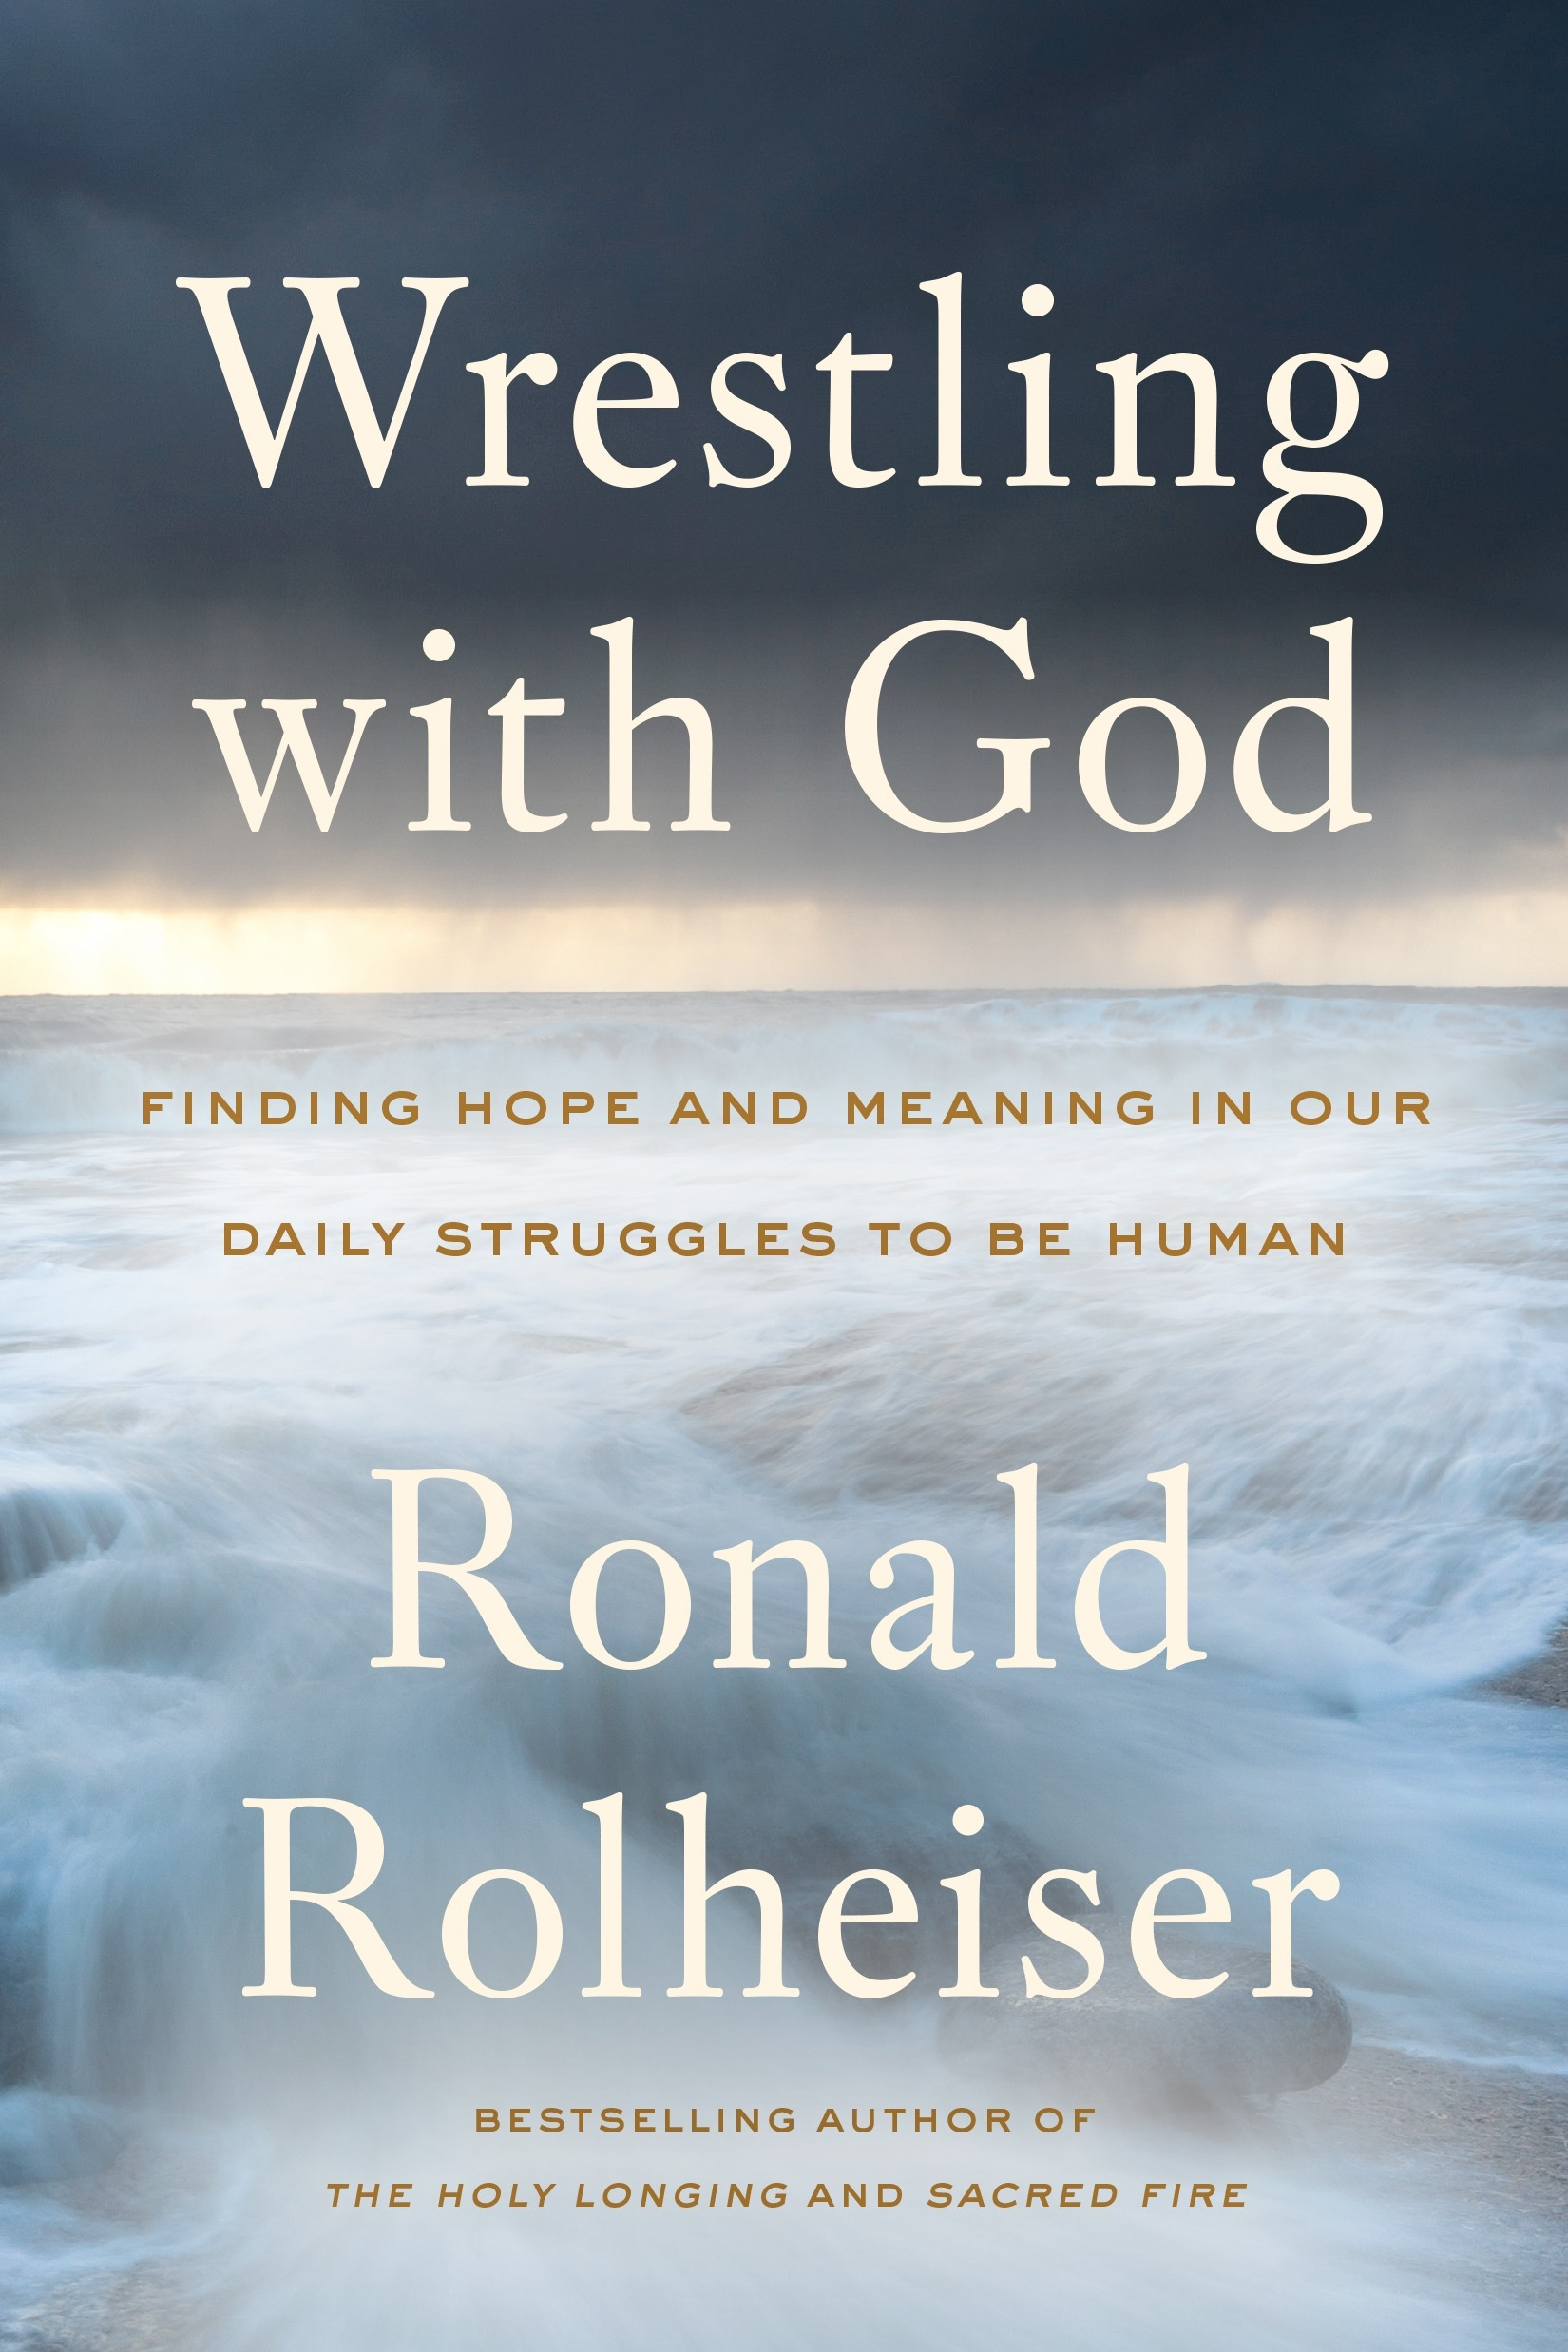 Wrestling with God: Finding Hope and Meaning in Our Daily Struggles to Be Human by Ronald Rolheiser, ISBN: 9780804139458